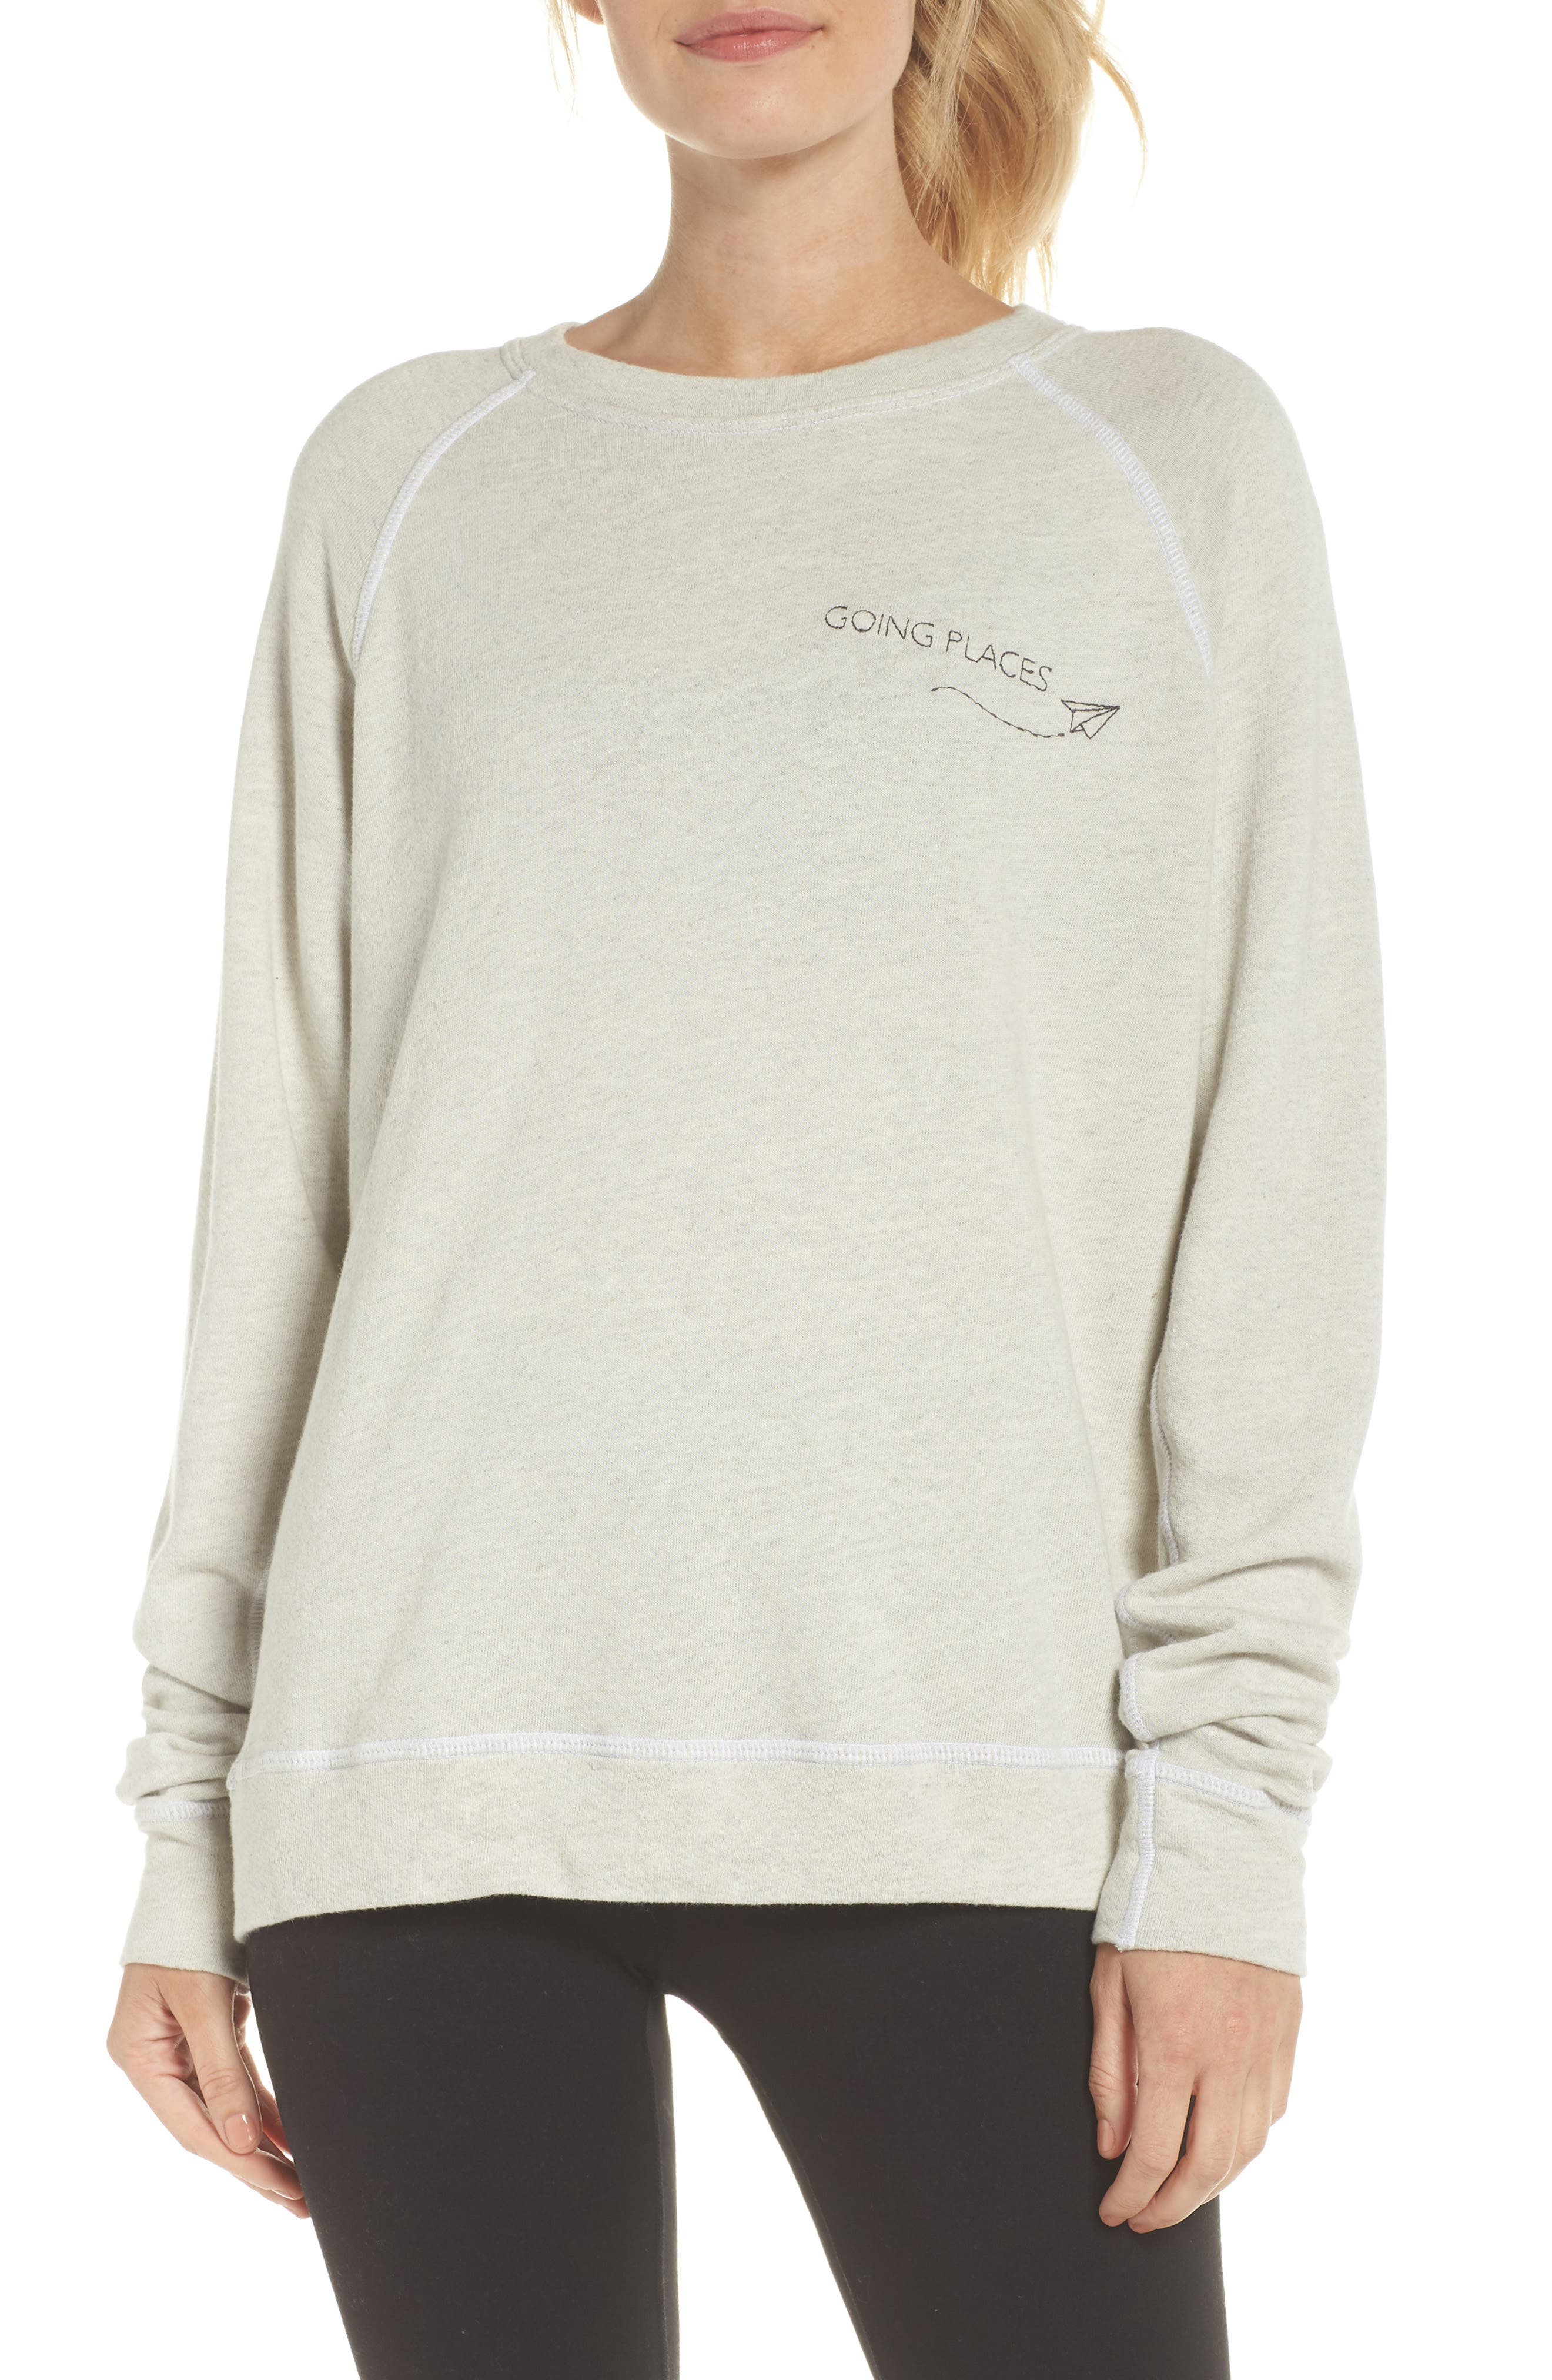 Smith Going Places Sweatshirt,                             Main thumbnail 1, color,                             250